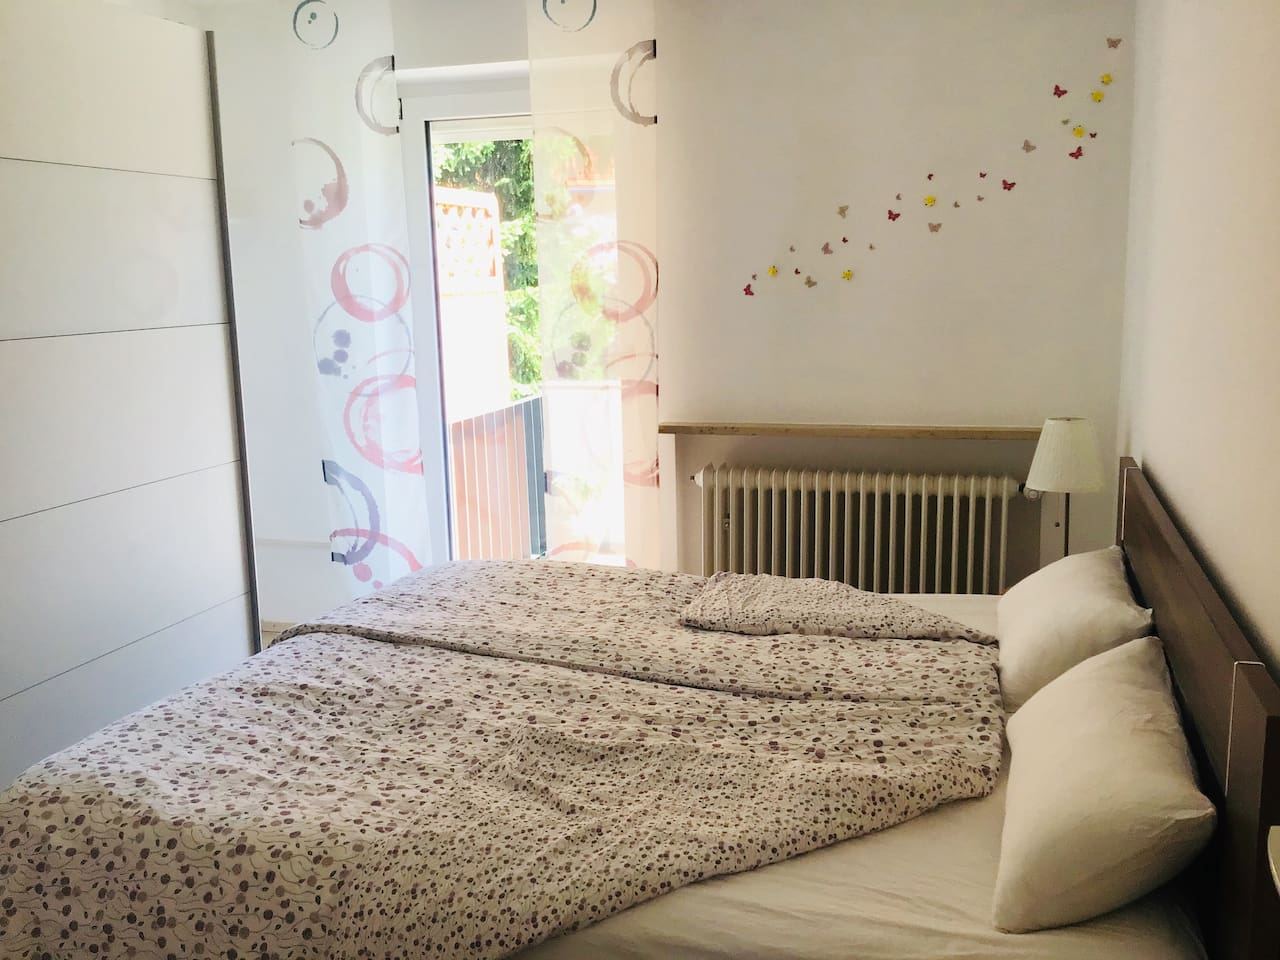 Double room with waterbeds, wardrobe and balcony